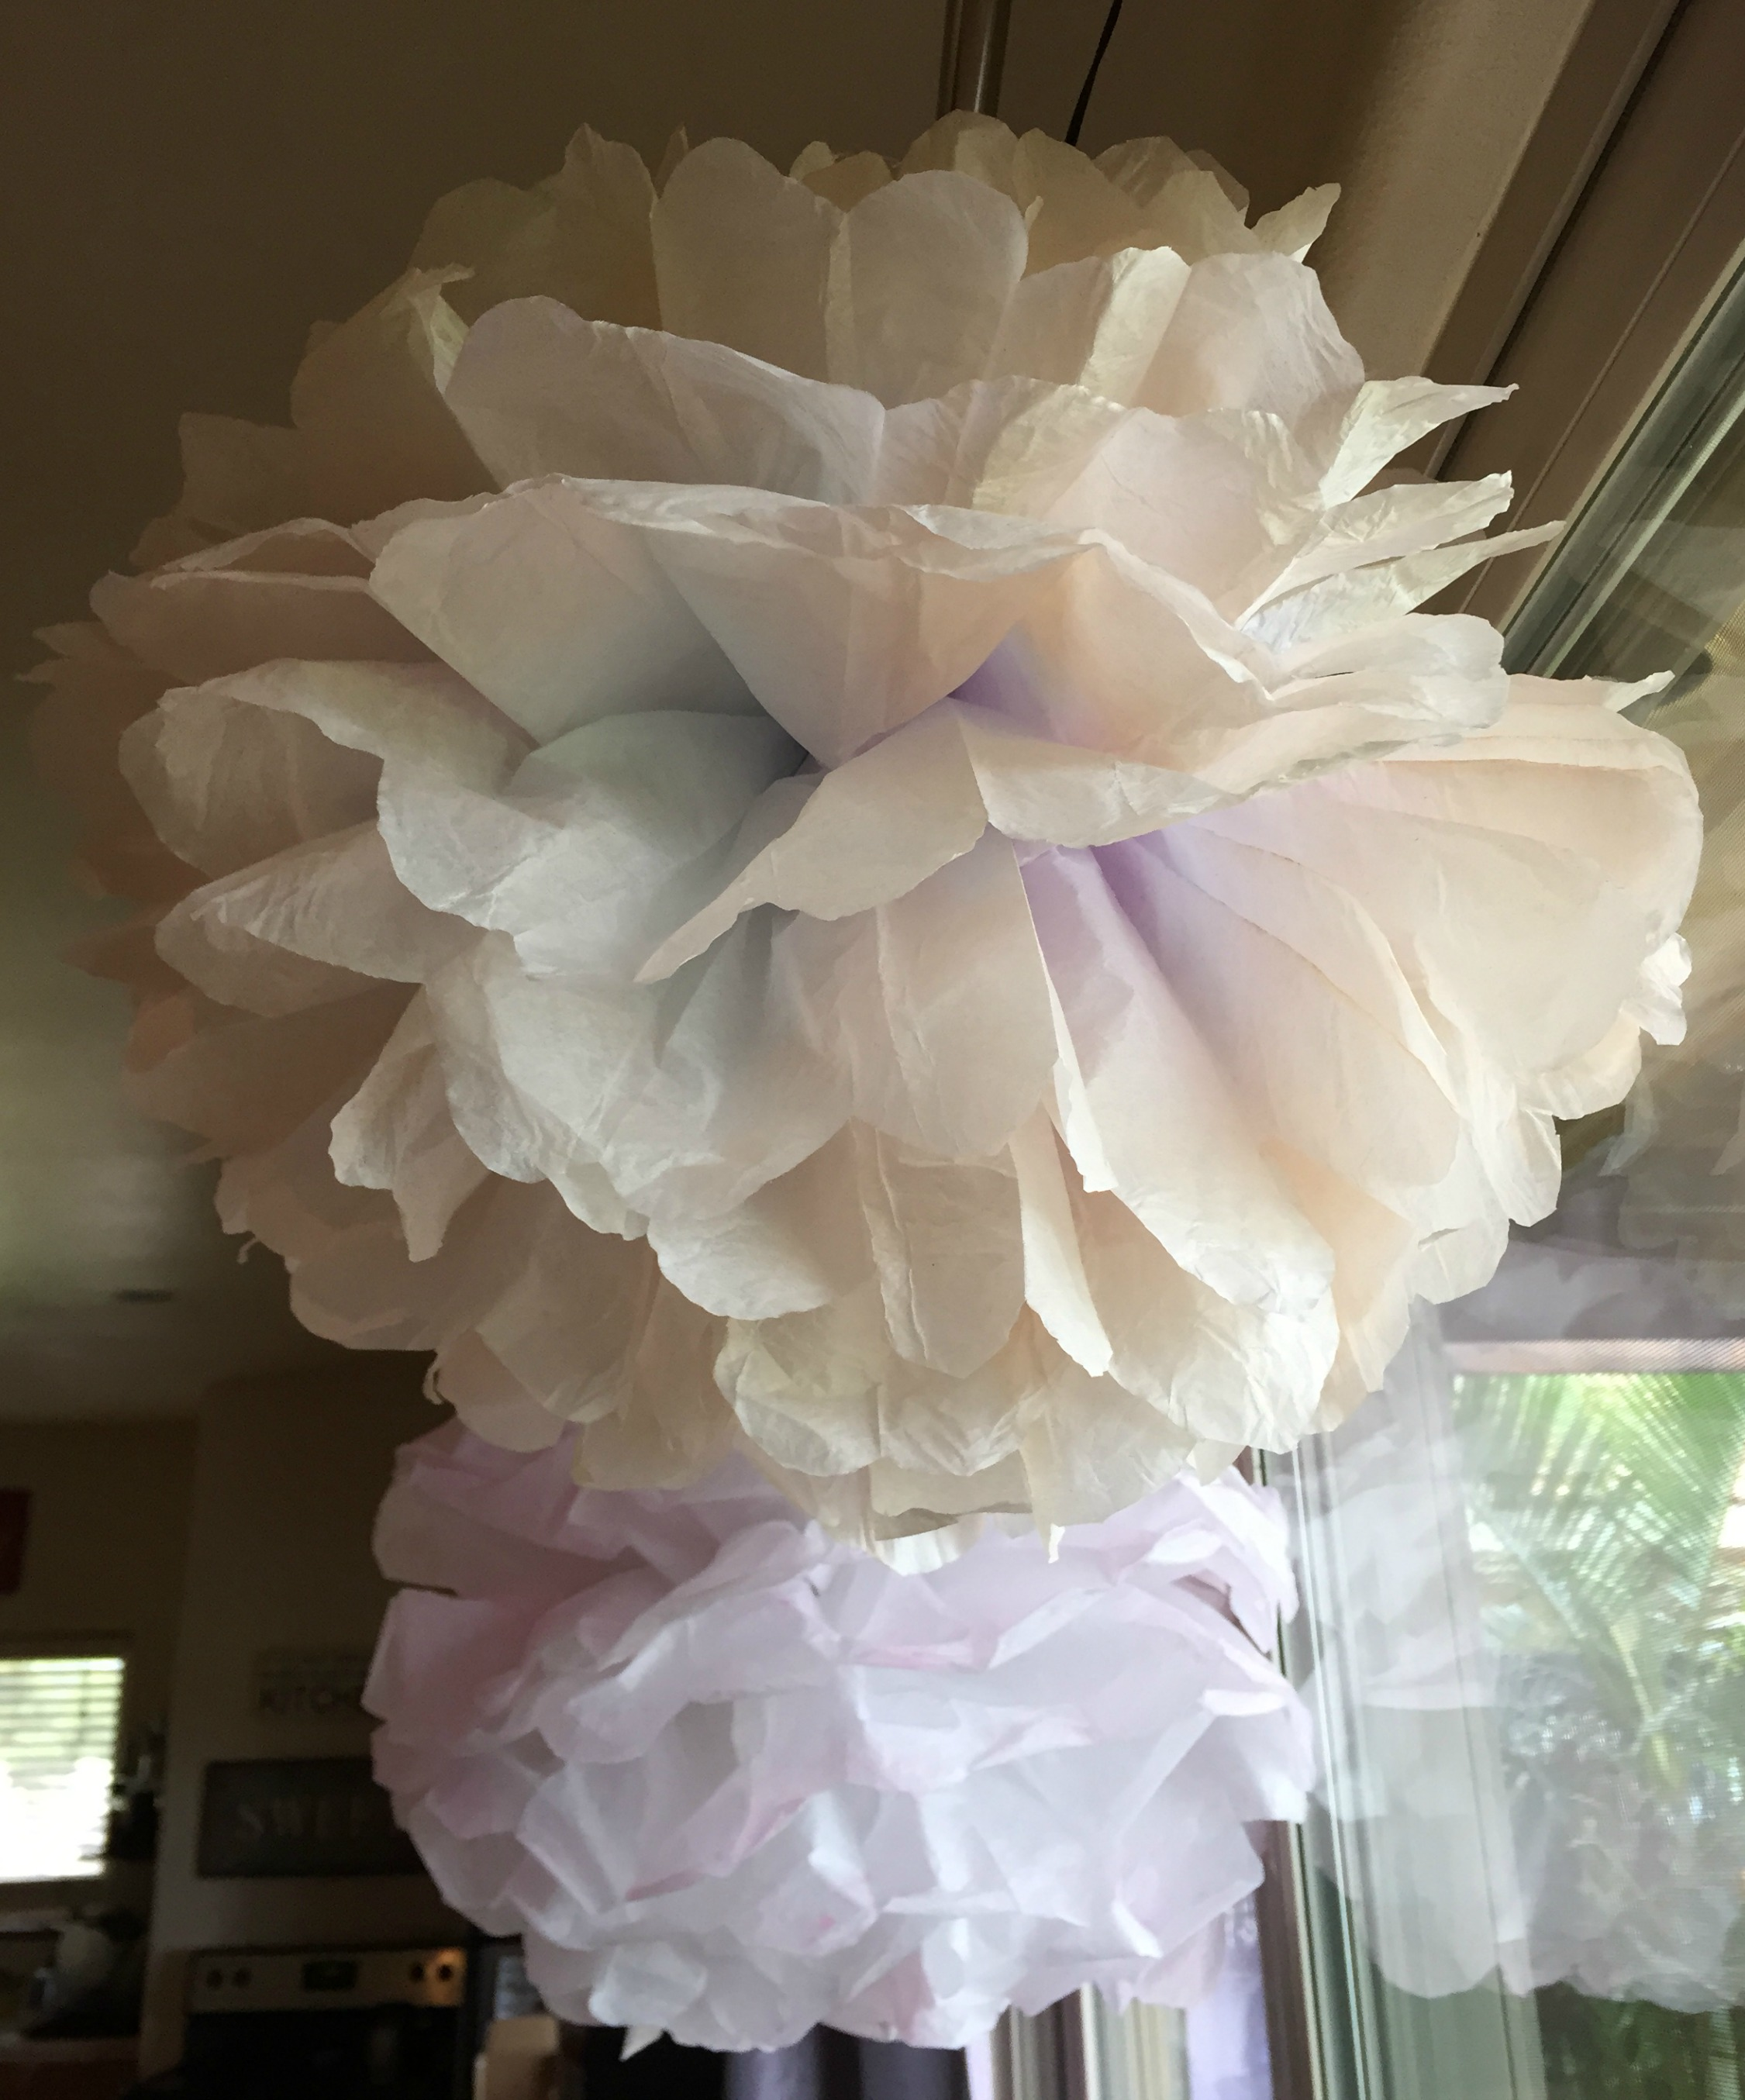 Strange Diy Party Decorations Part 1 Tissue Paper Pom Poms Home Interior And Landscaping Ologienasavecom